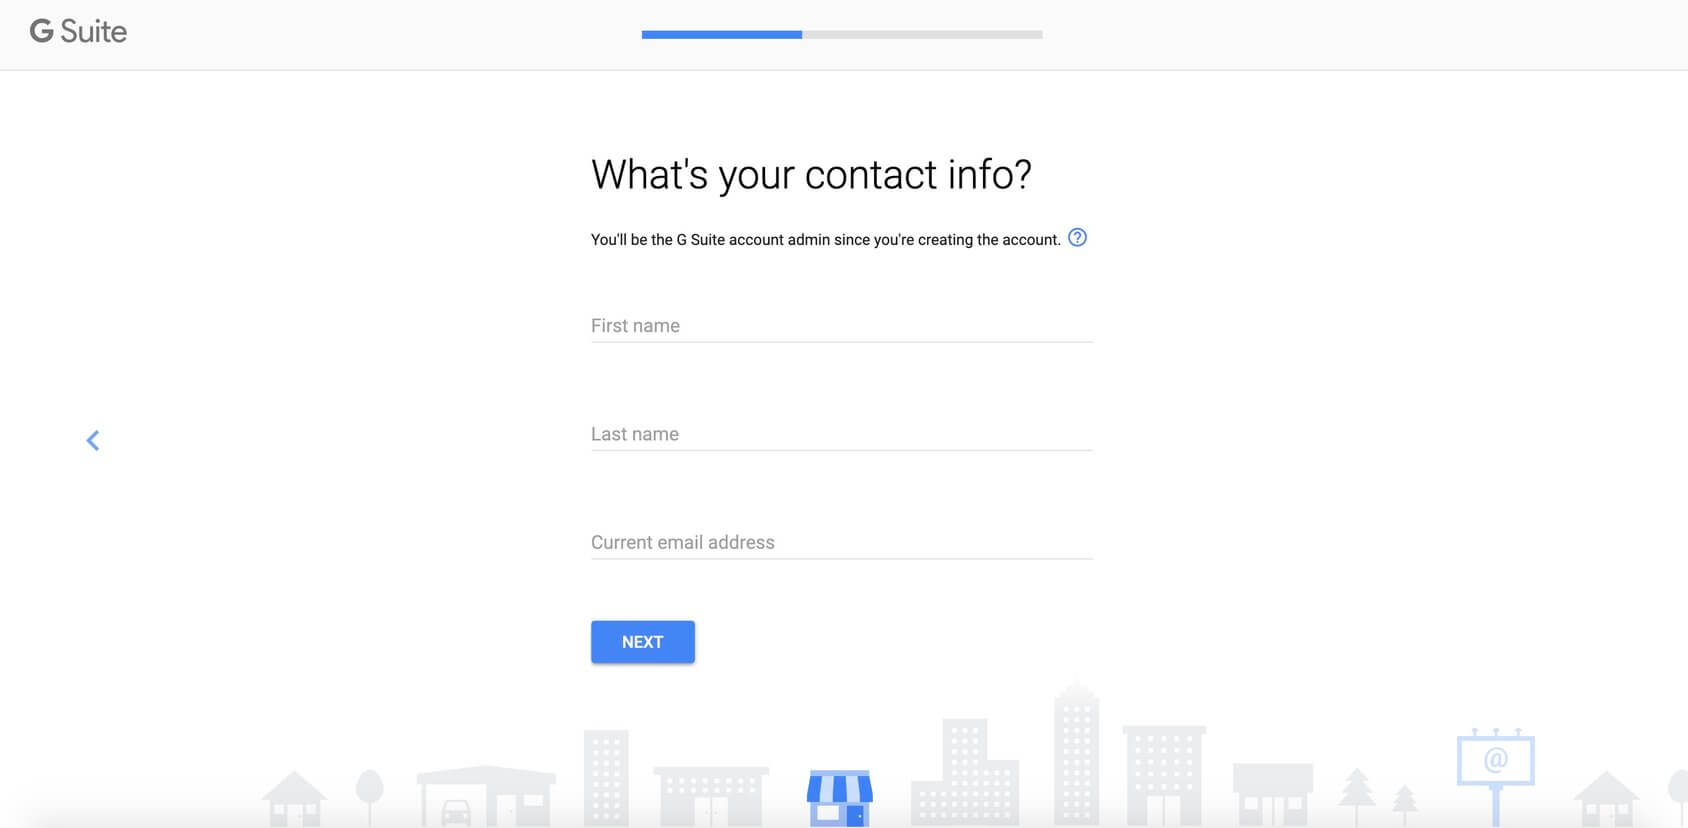 gsuite contact info